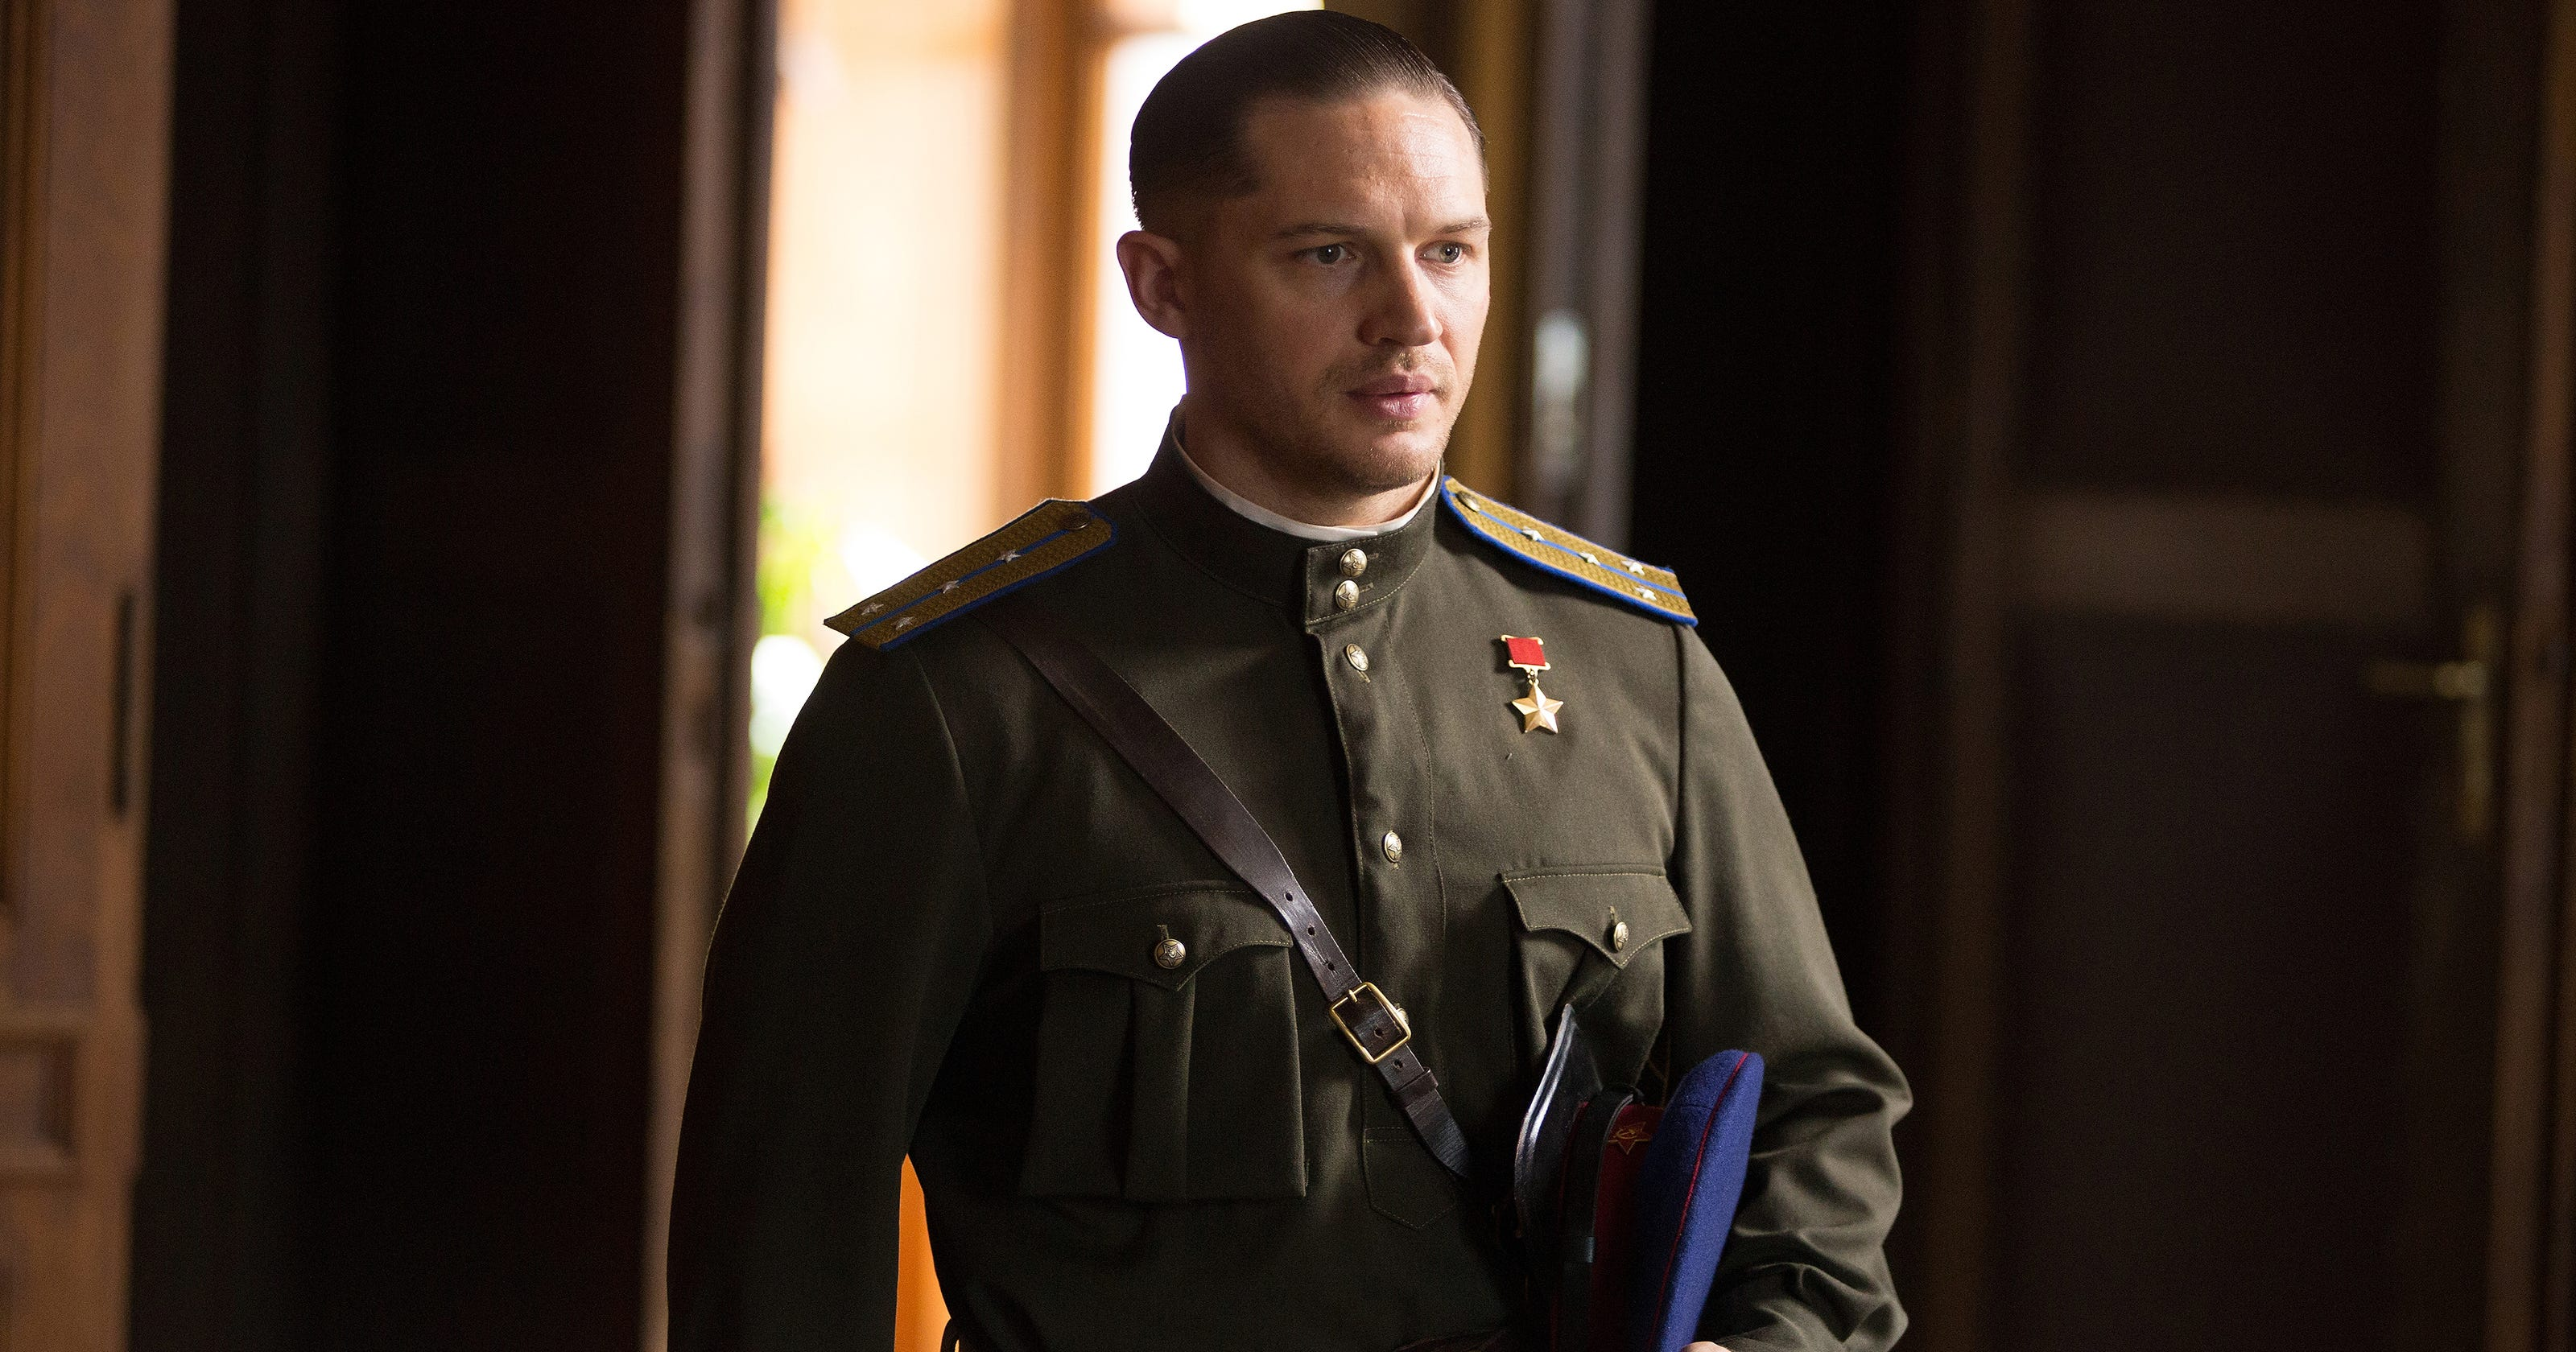 Soviet paranoia colors search for killer in 'Child 44'